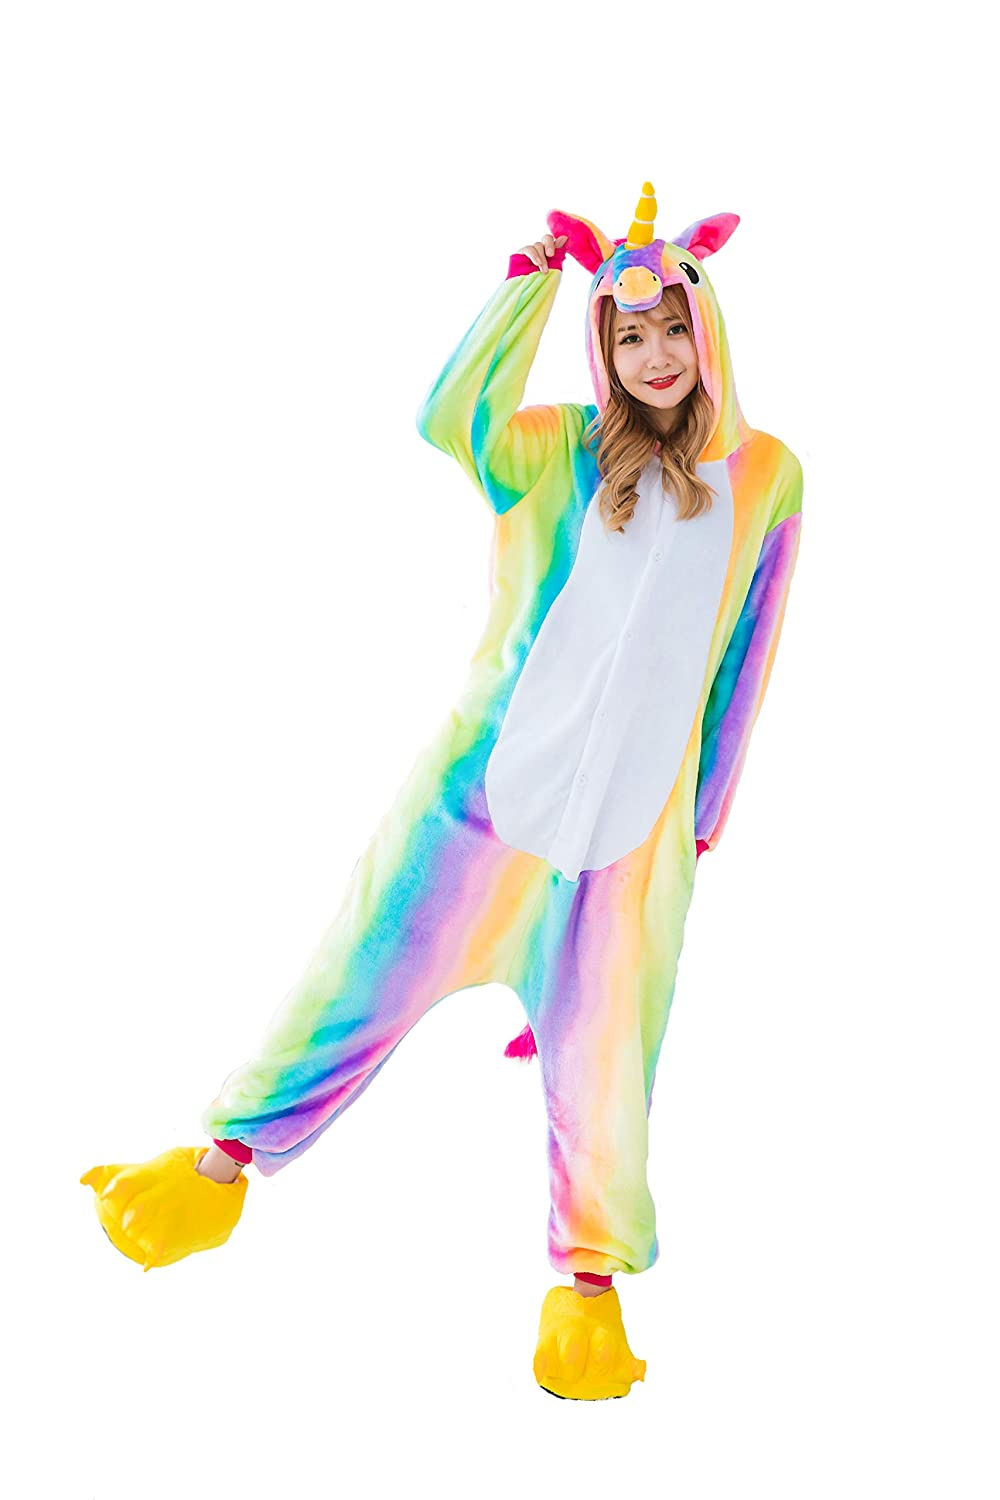 Hycomell Unicorn Onesie Pajamas Winter Warm Soft Flannel Pyjamas 3D Cartoon Animal Style Costume Hooded Jumpsuit for Women Girls Cosplay Idear Gift in Chrismas Halloween Novelty Costume Ahaoshuiyi